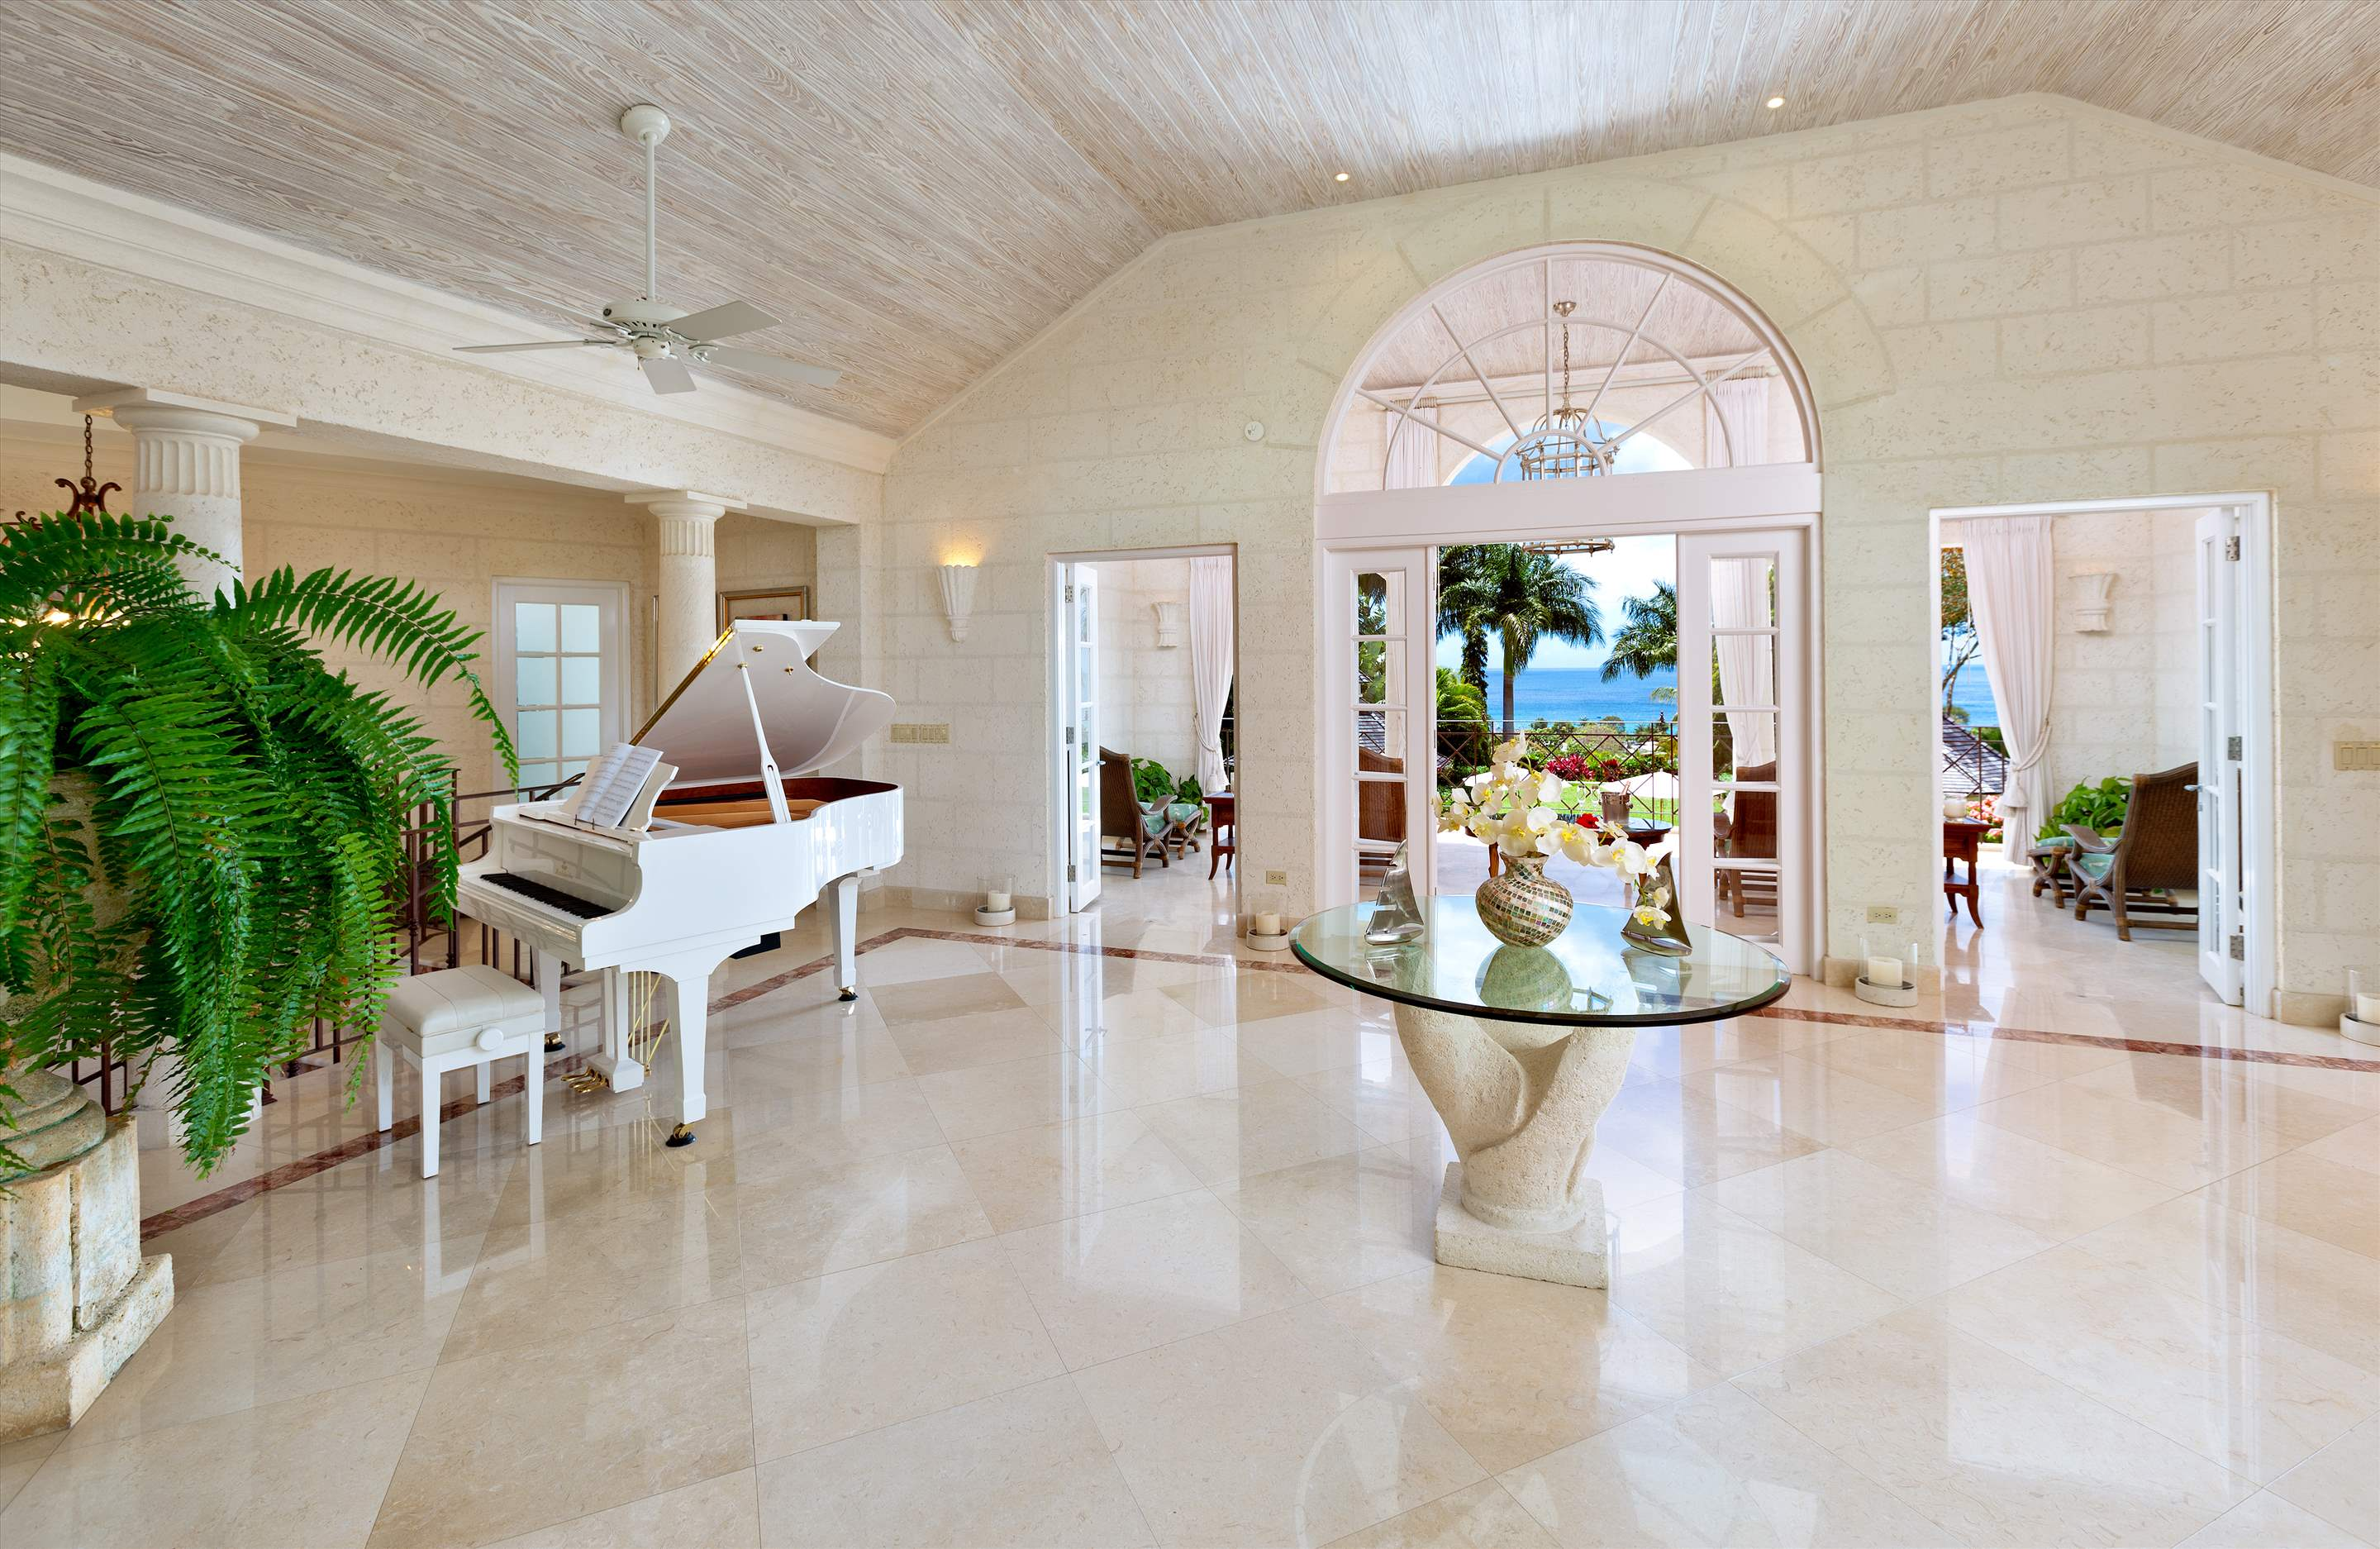 Illusion, Four Bedroom Rate, 4 bedroom villa in St. James & West Coast, Barbados Photo #6